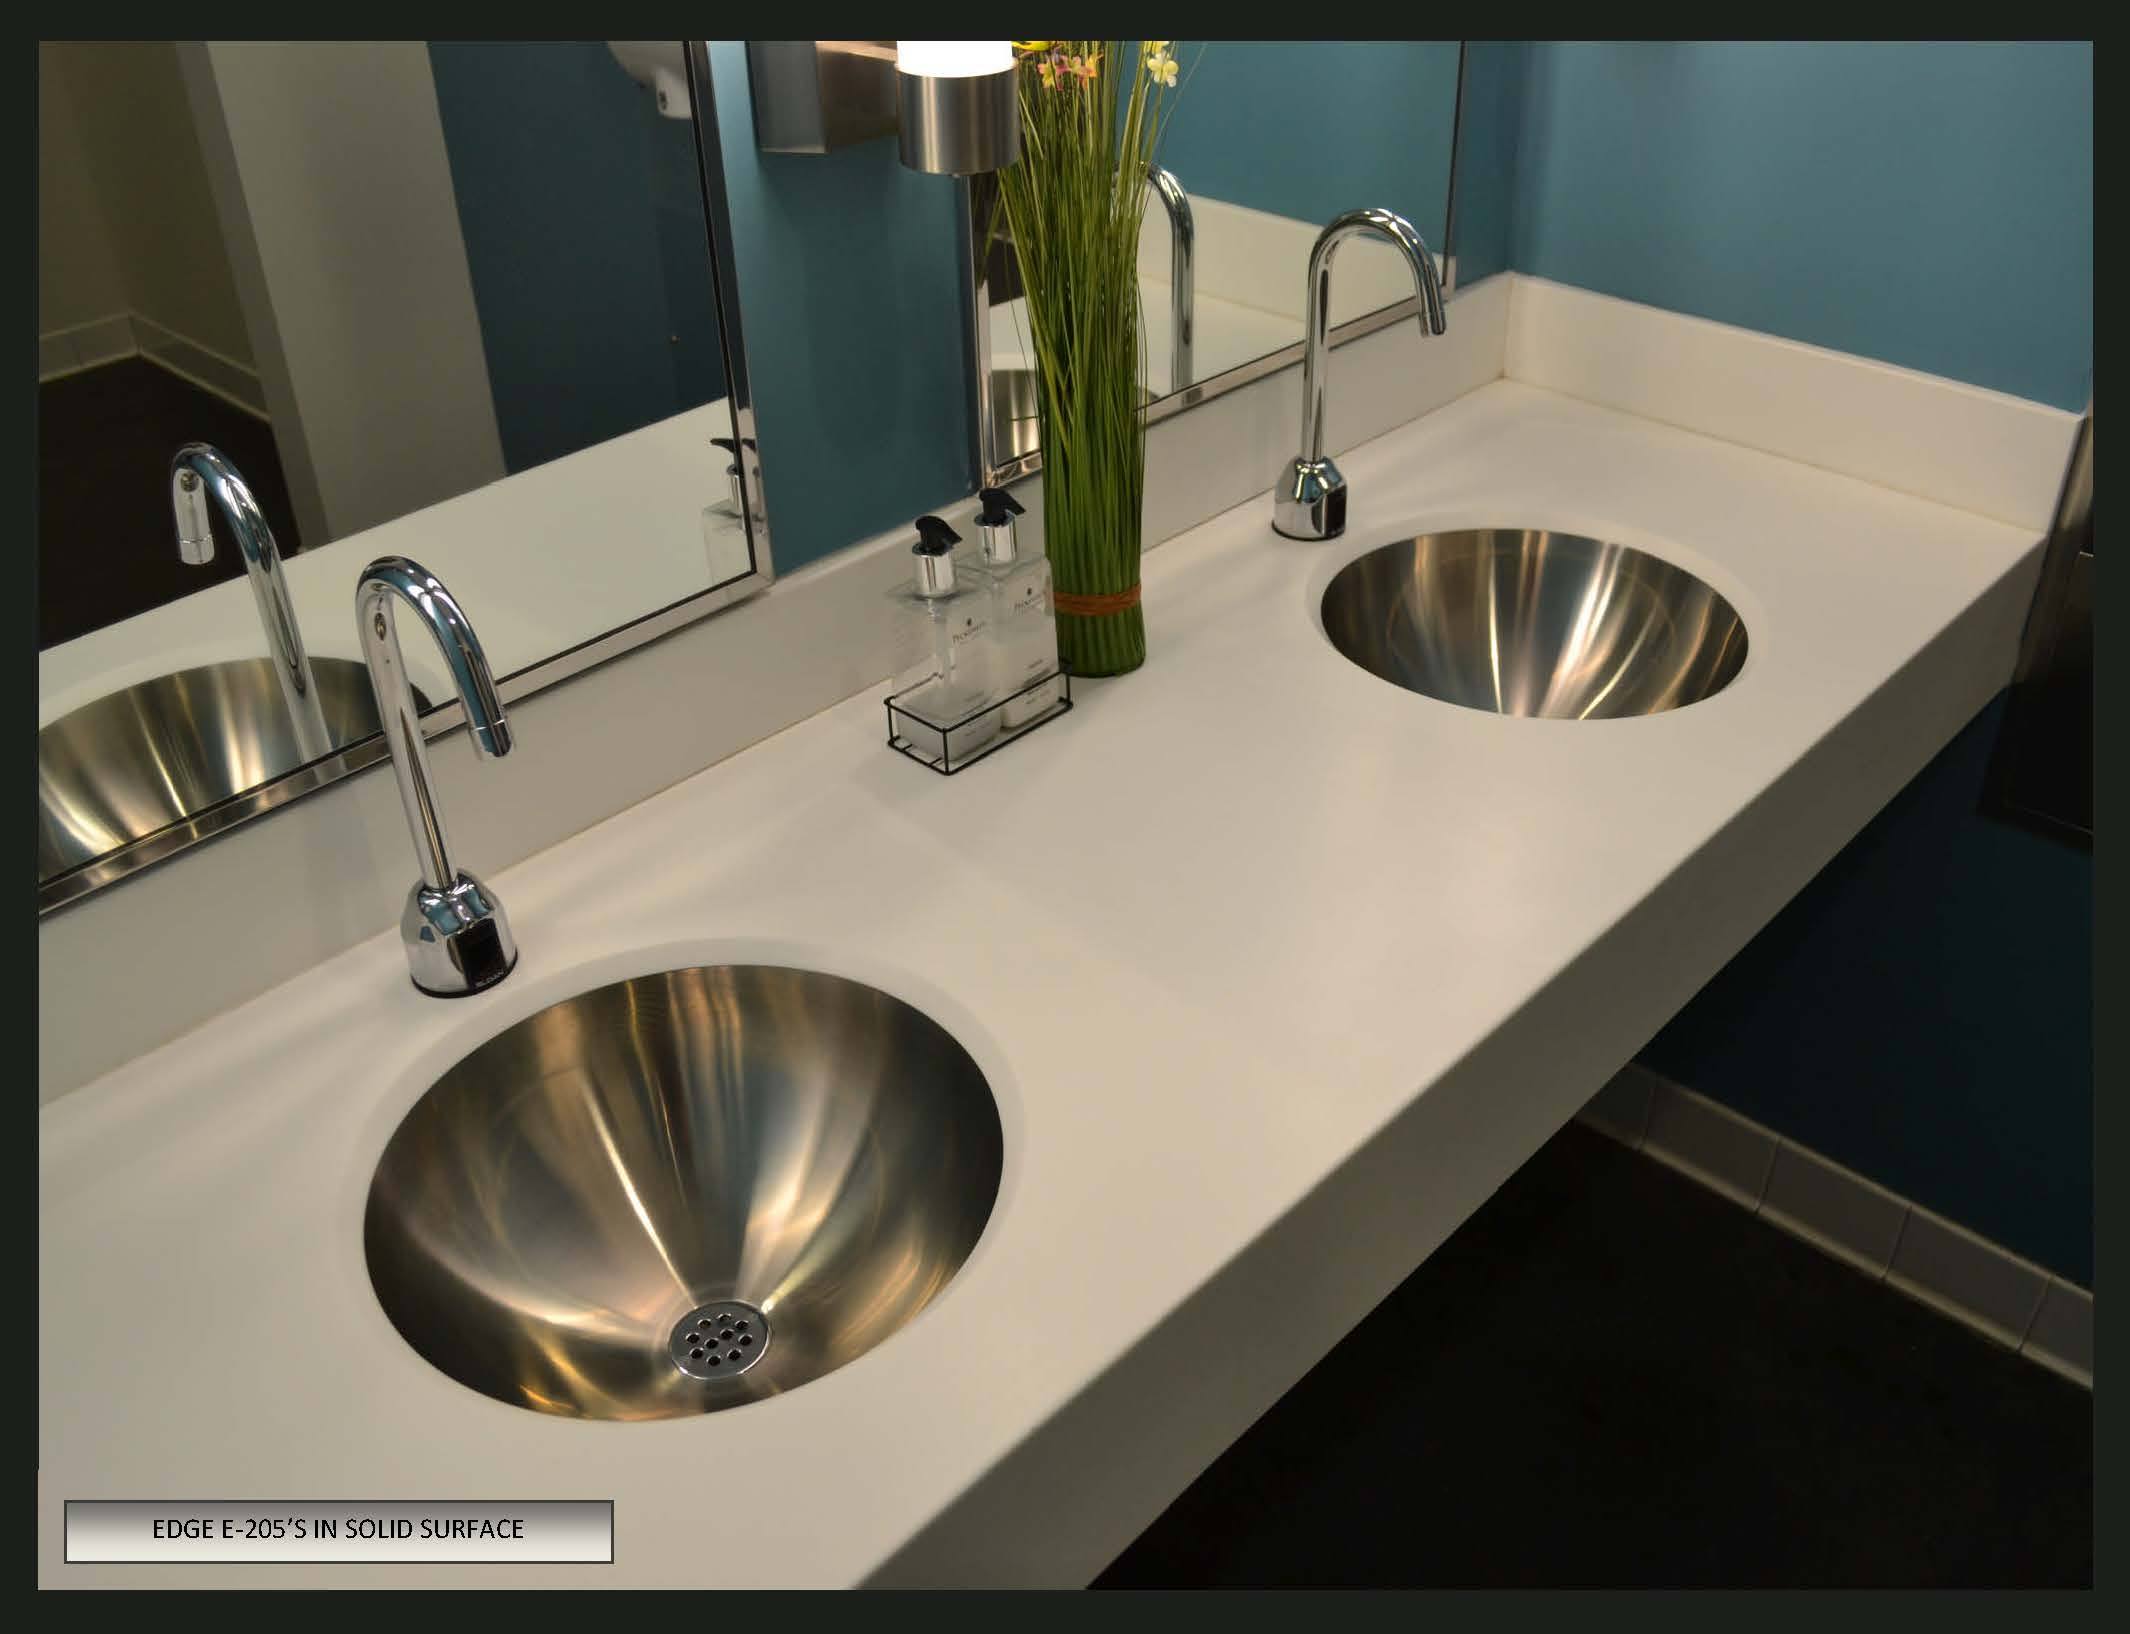 How To Choose A Sink For Solid Surface Countertops